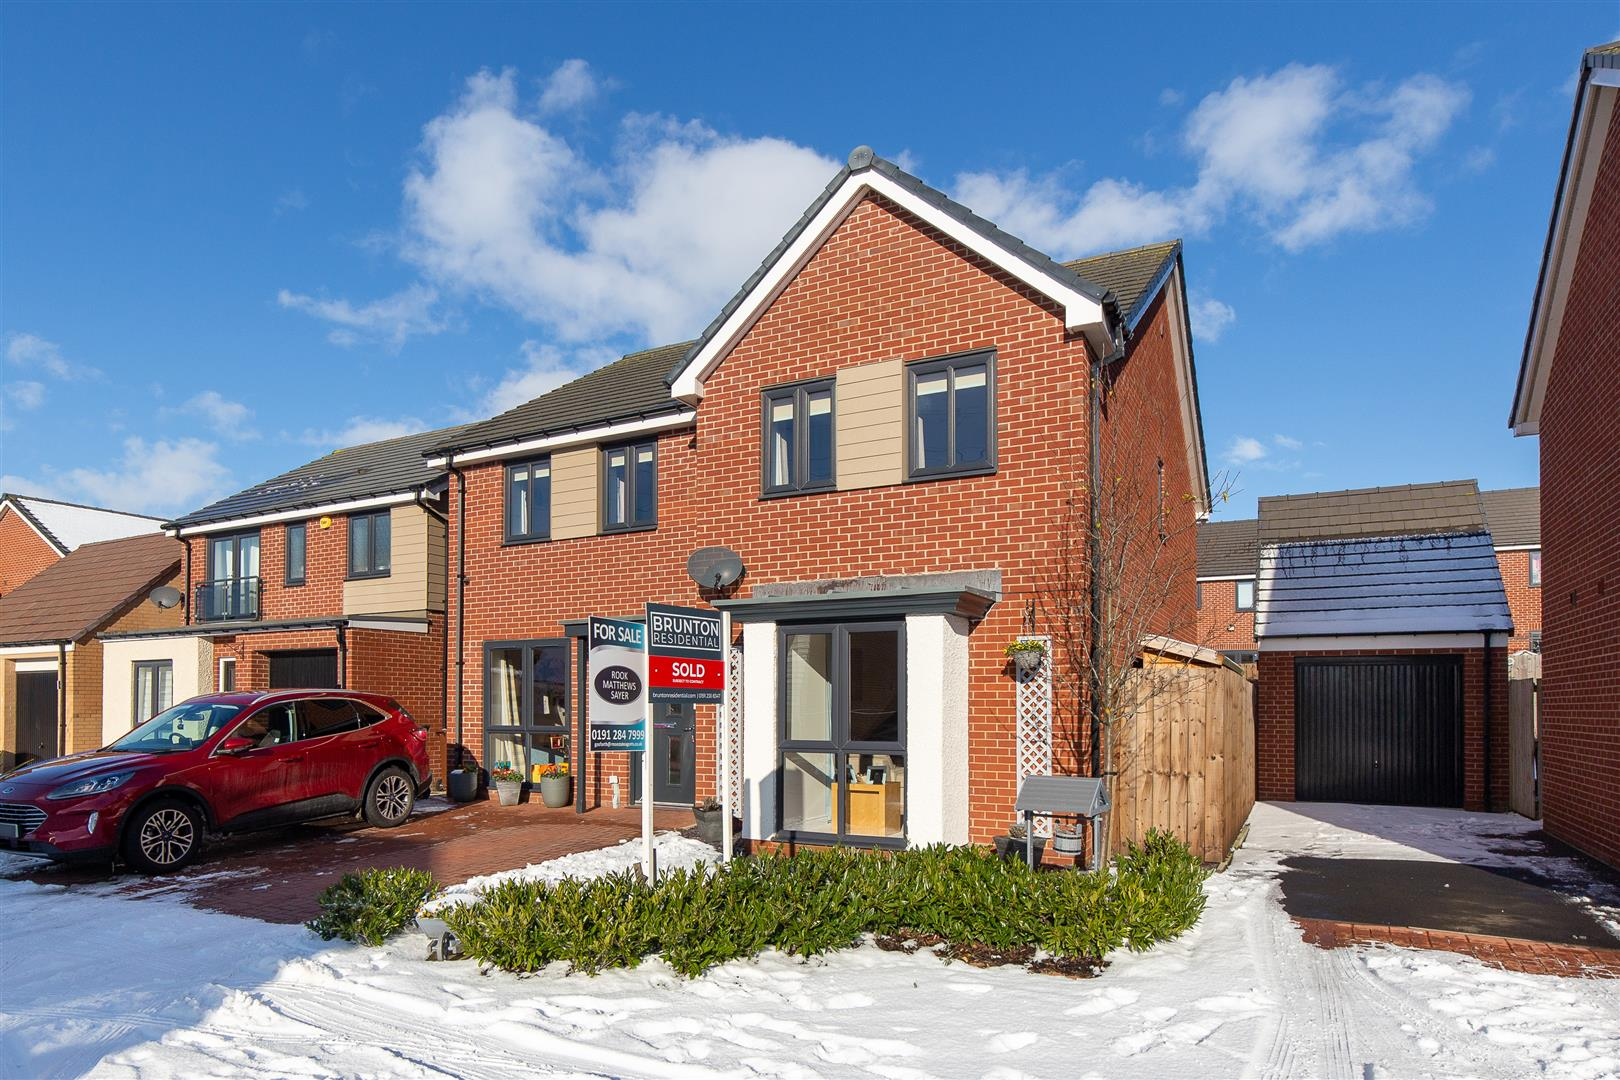 4 bed detached house for sale in Bridget Gardens, Great Park - Property Image 1